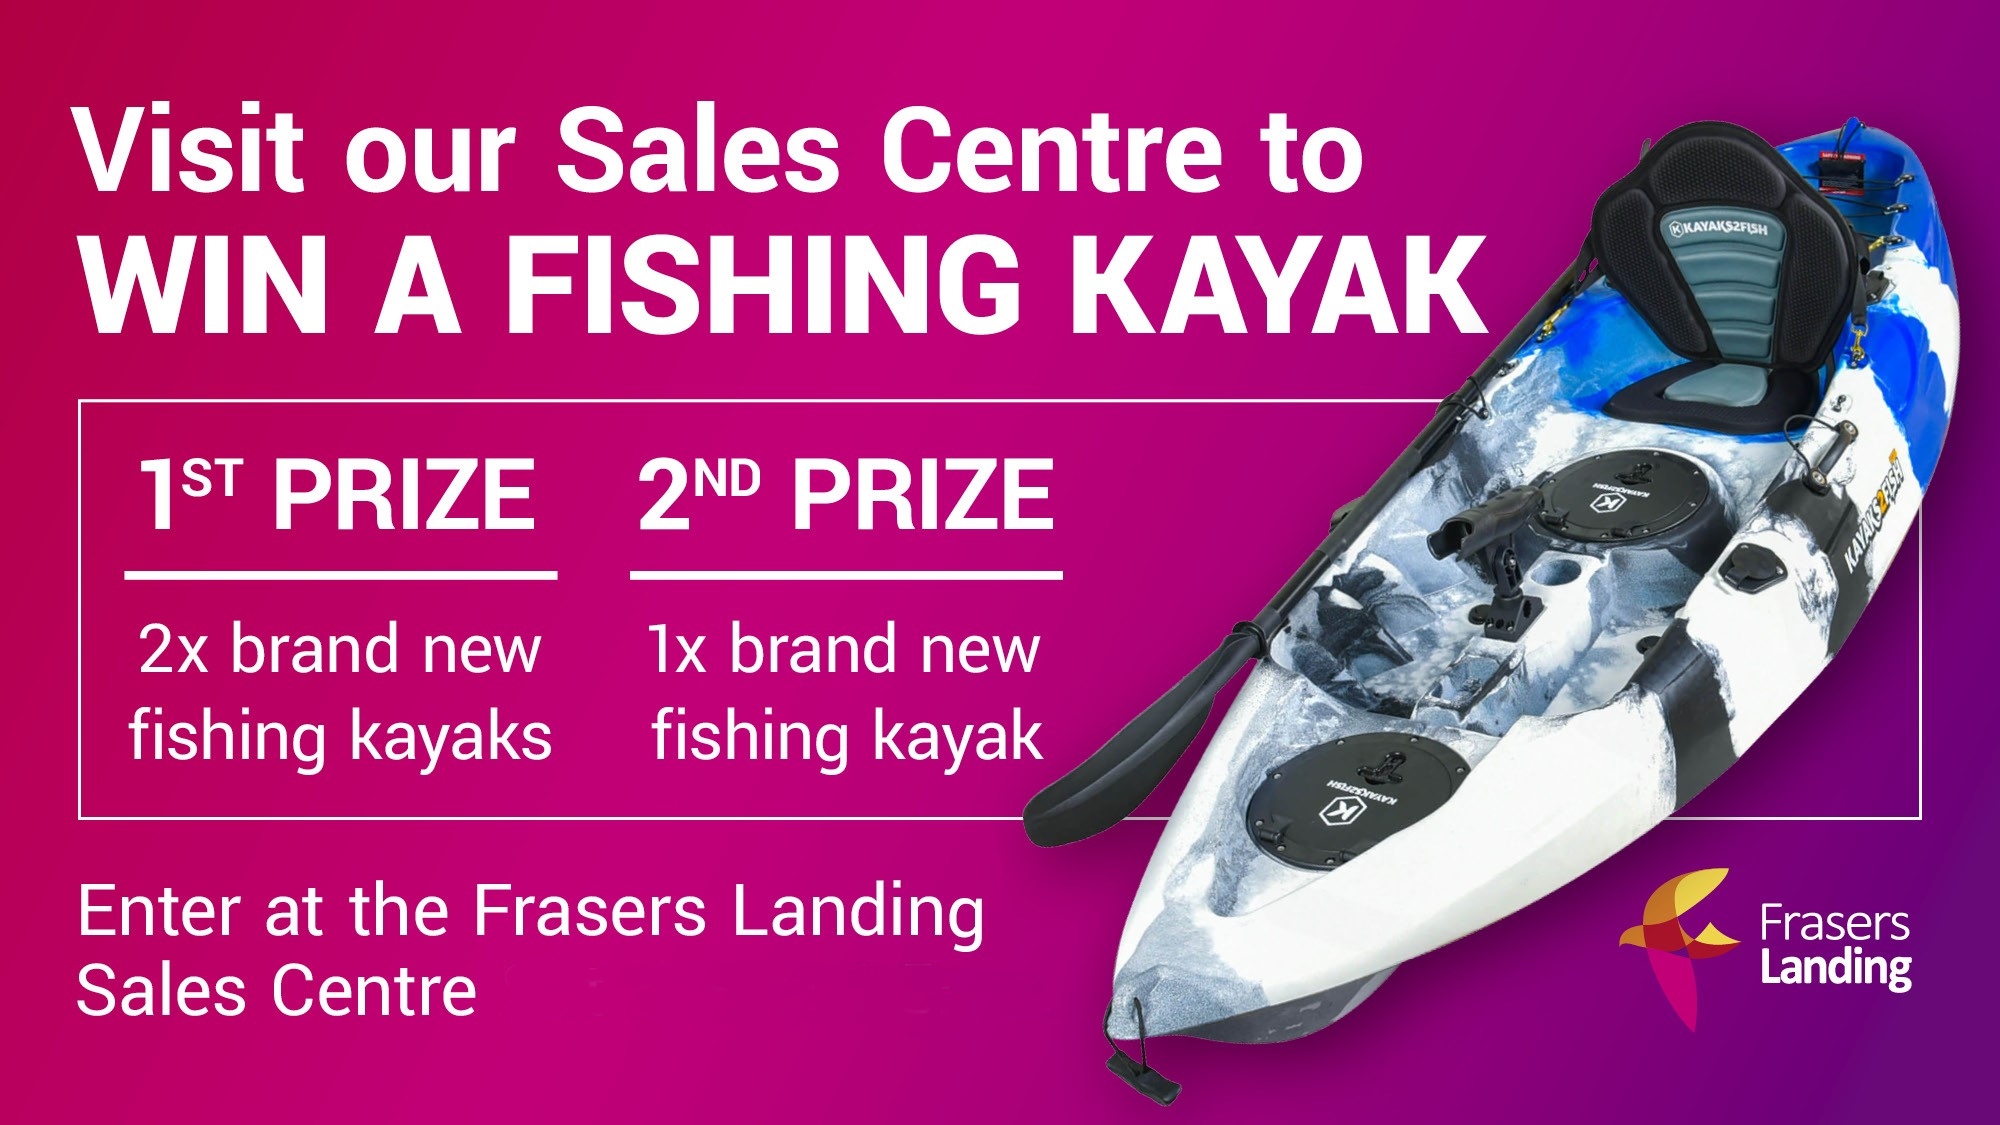 Win a Fishing Kayak at Frasers Landing